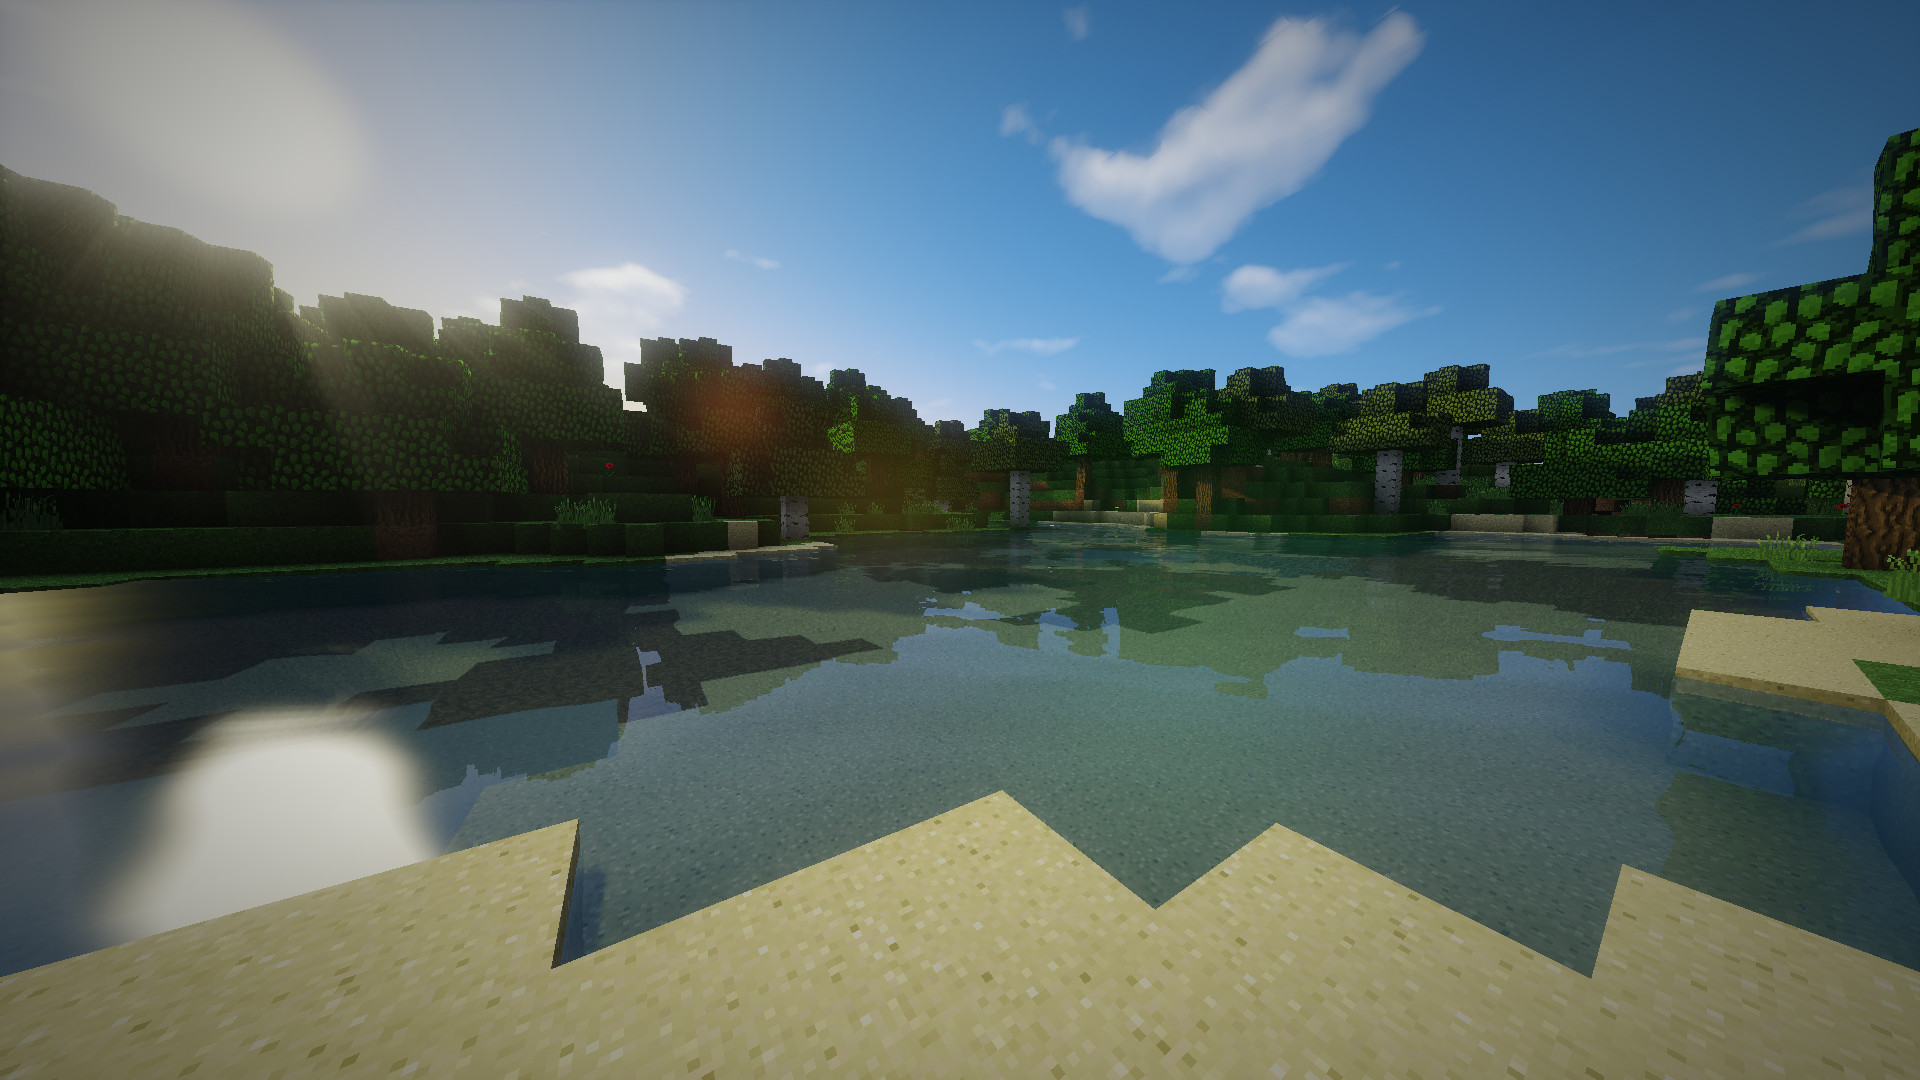 Minecraft Shaders Wallpapers Hd For Windows 10: Epic Minecraft Background (67+ Images